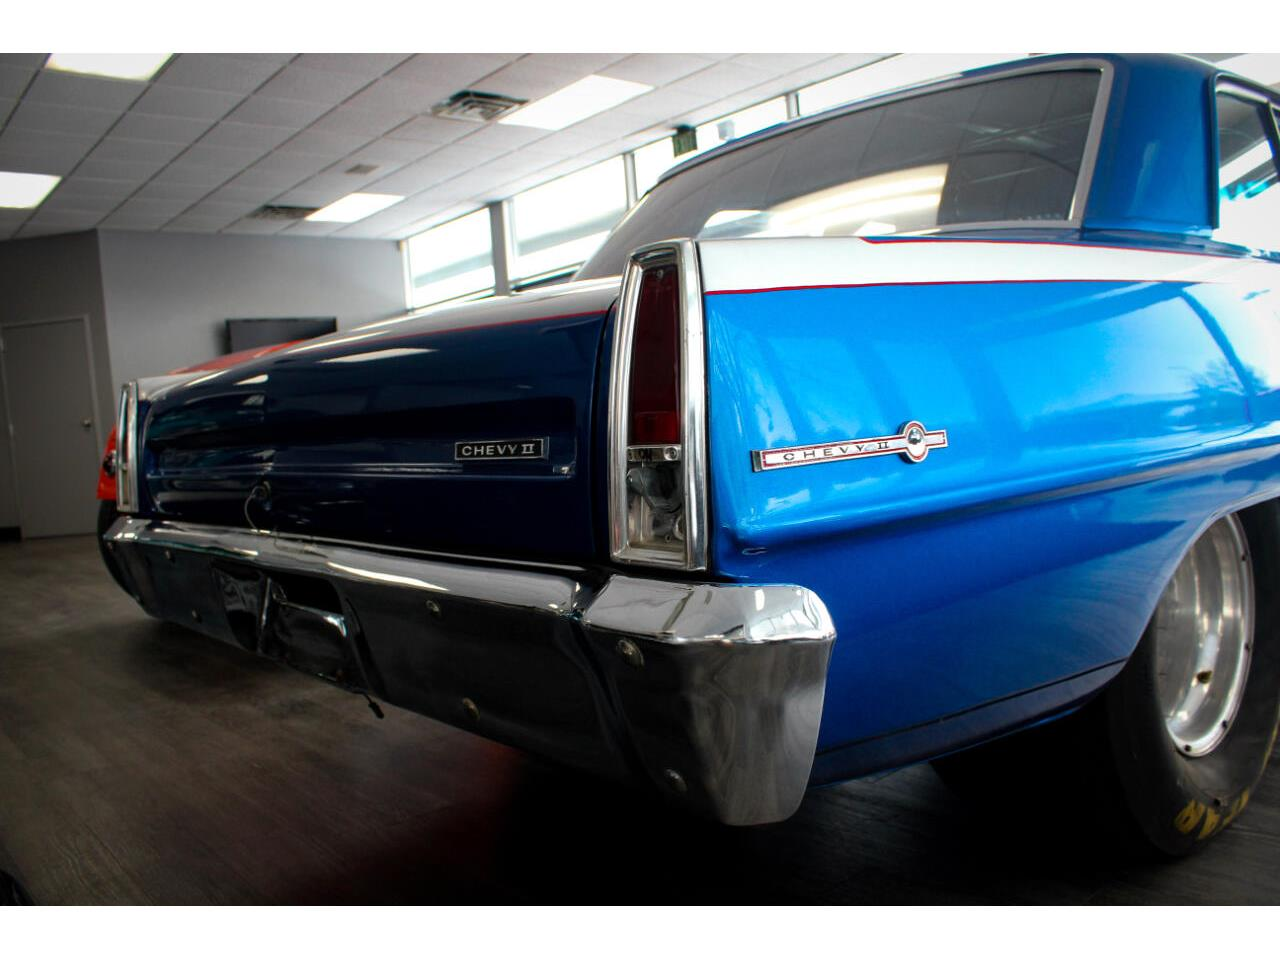 1966 Chevrolet Chevy II (CC-1385384) for sale in Greeley, Colorado